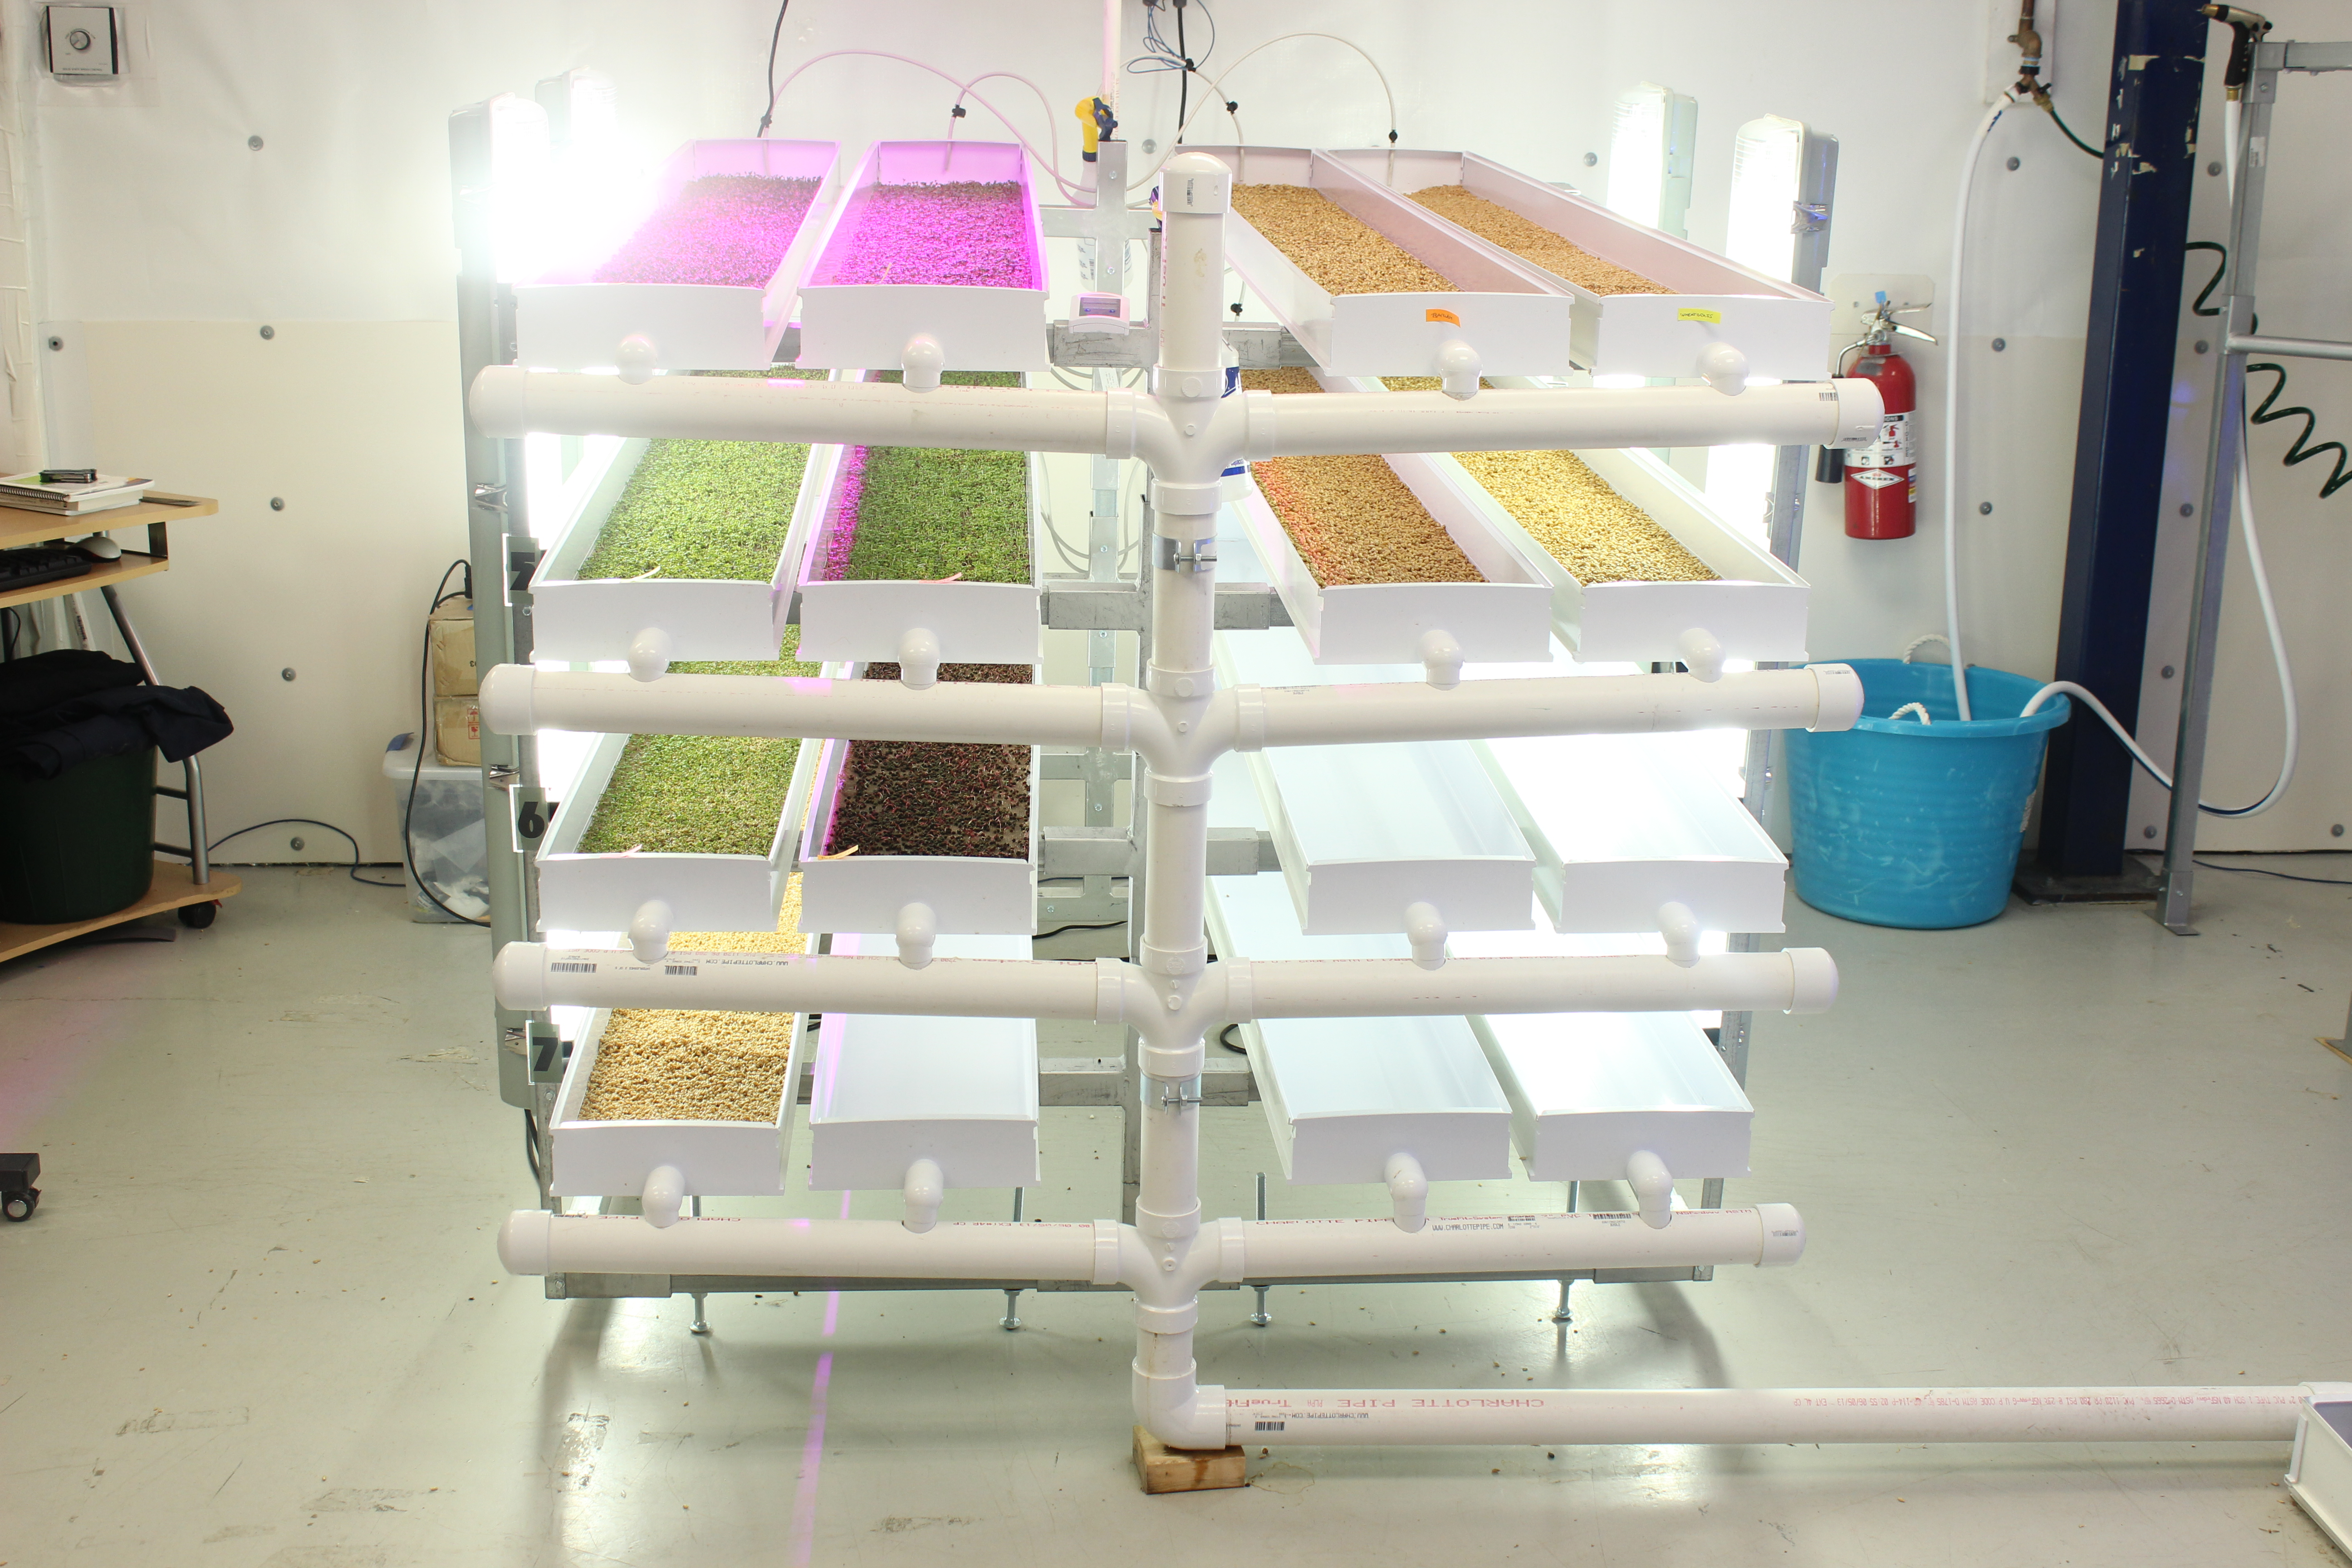 Untangling The Secrets Of Microgreen Production Part I